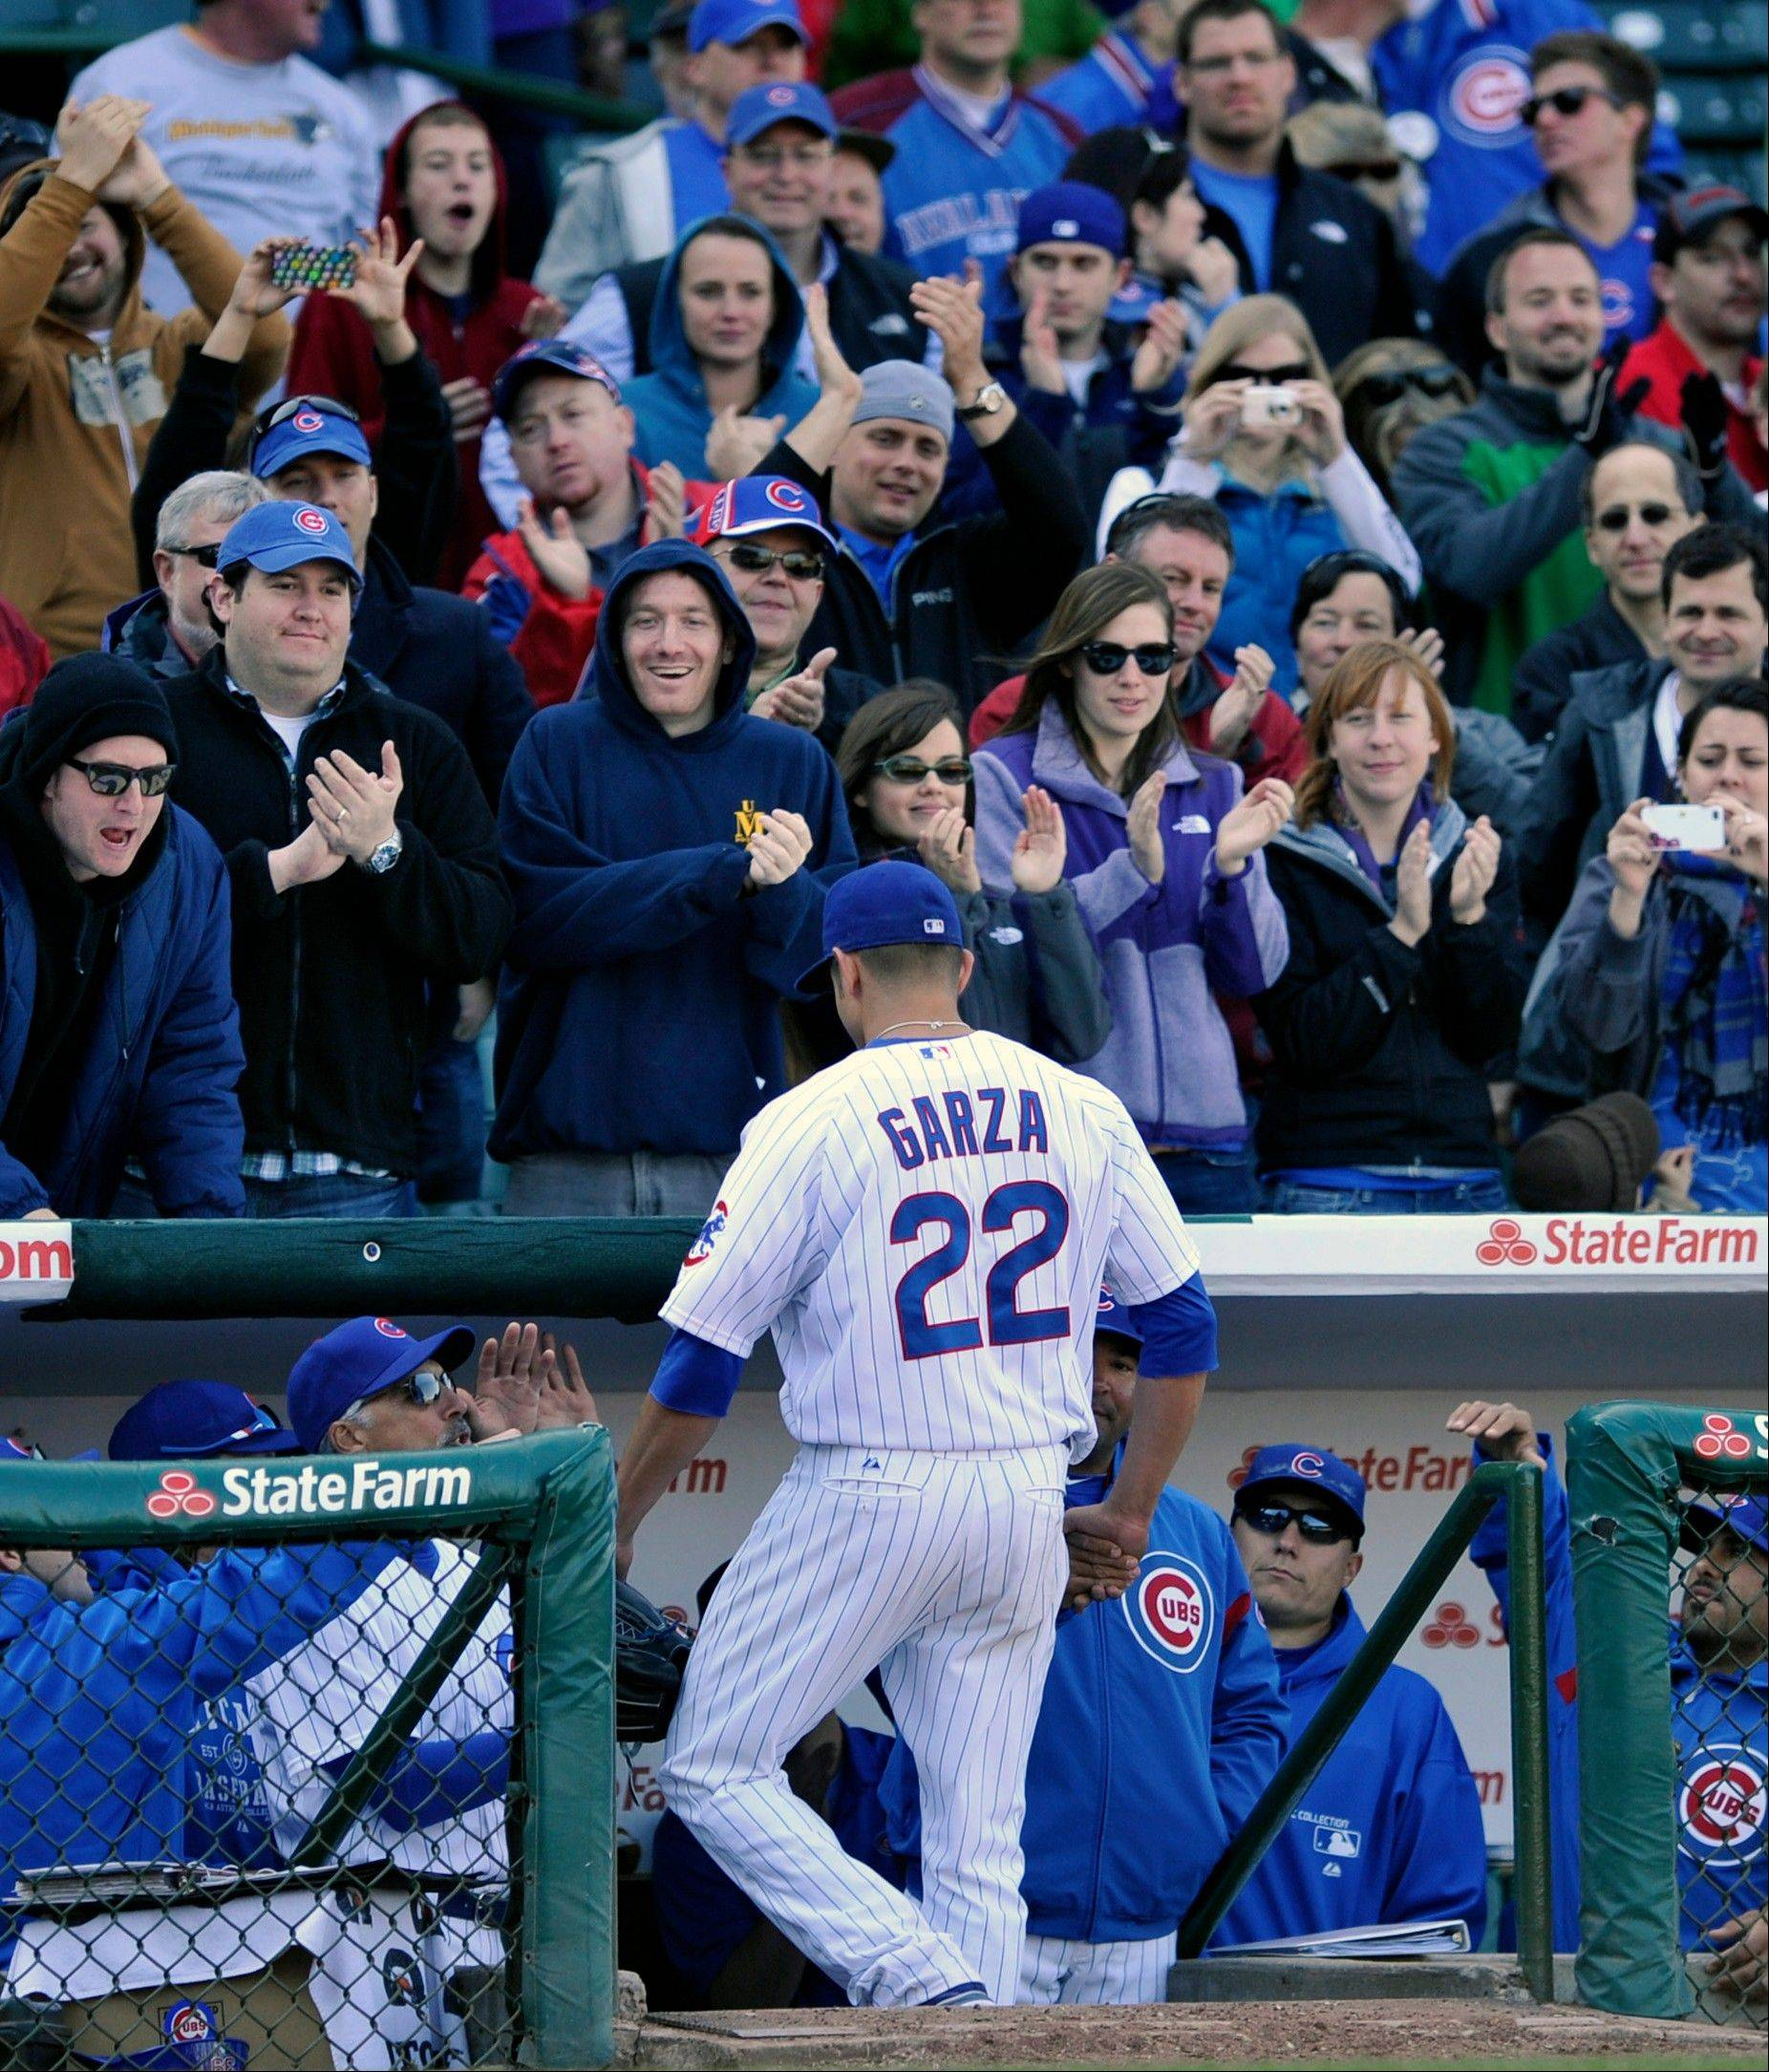 Cubs starting pitcher Matt Garza gets an ovation from the fans as he leaves the game in the ninth inning Thursday.